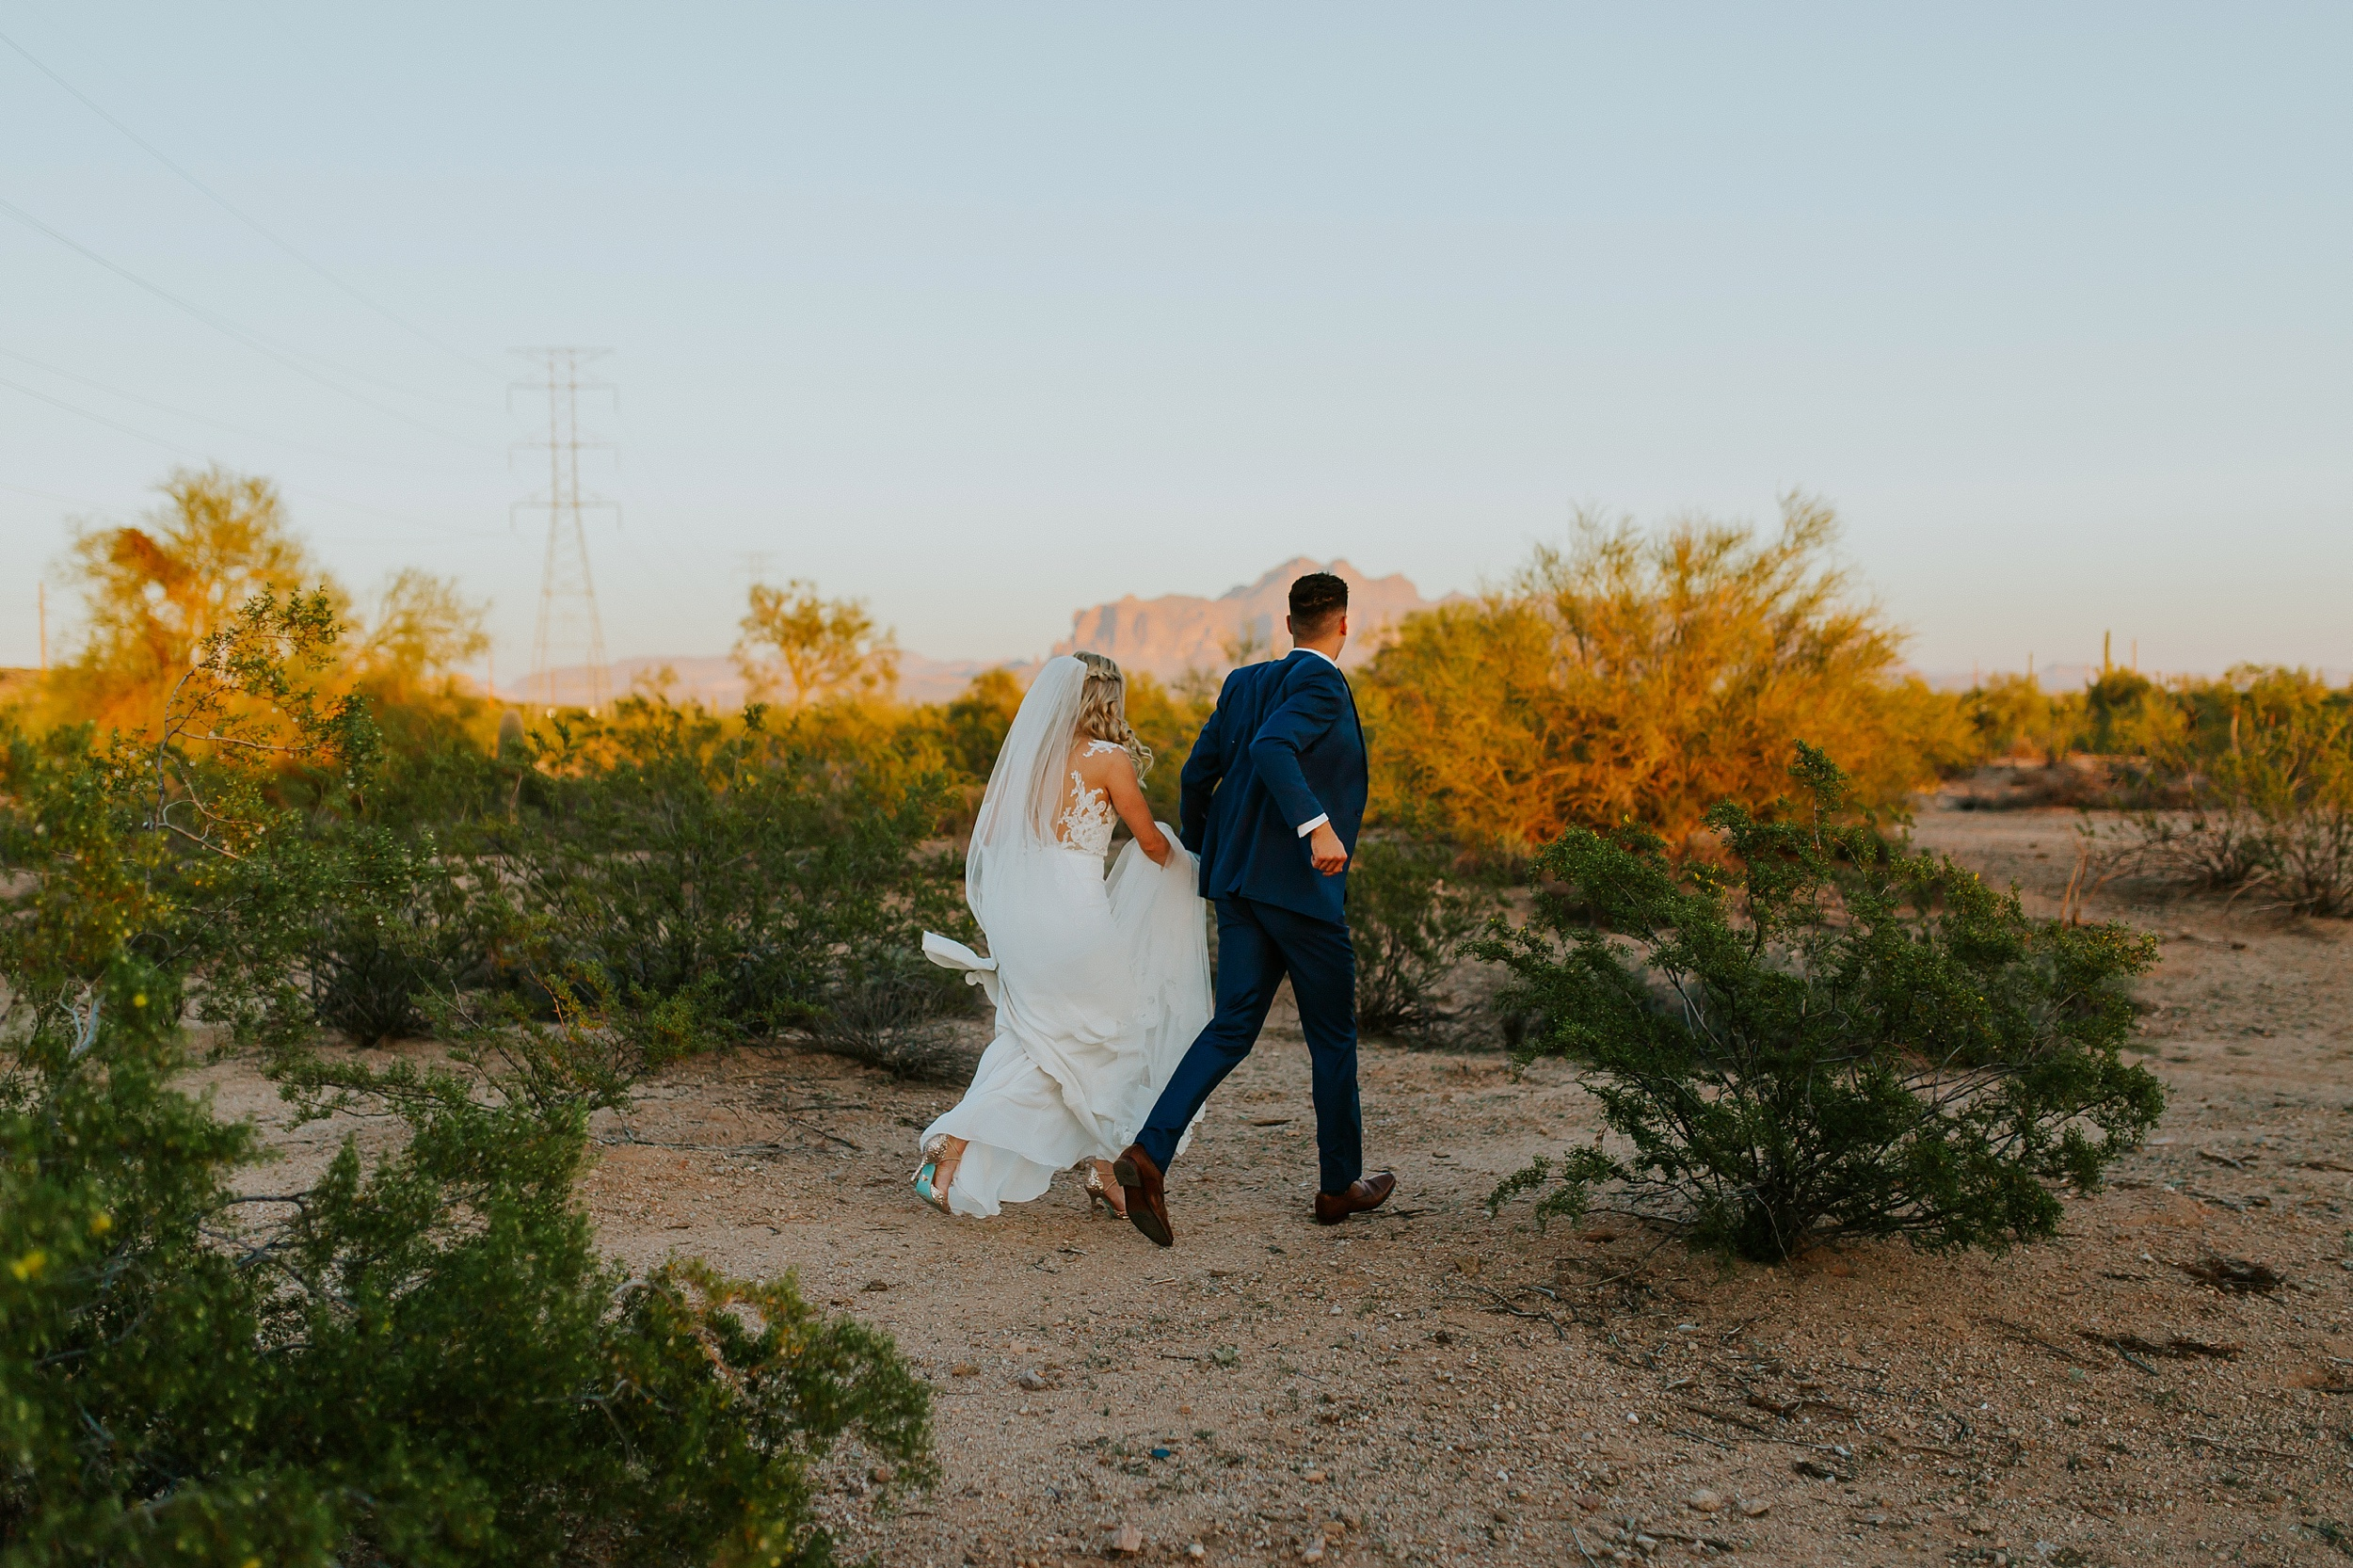 Meg+Bubba_Wedding_Bride+Groom_Portraits_Arizona-196.jpg